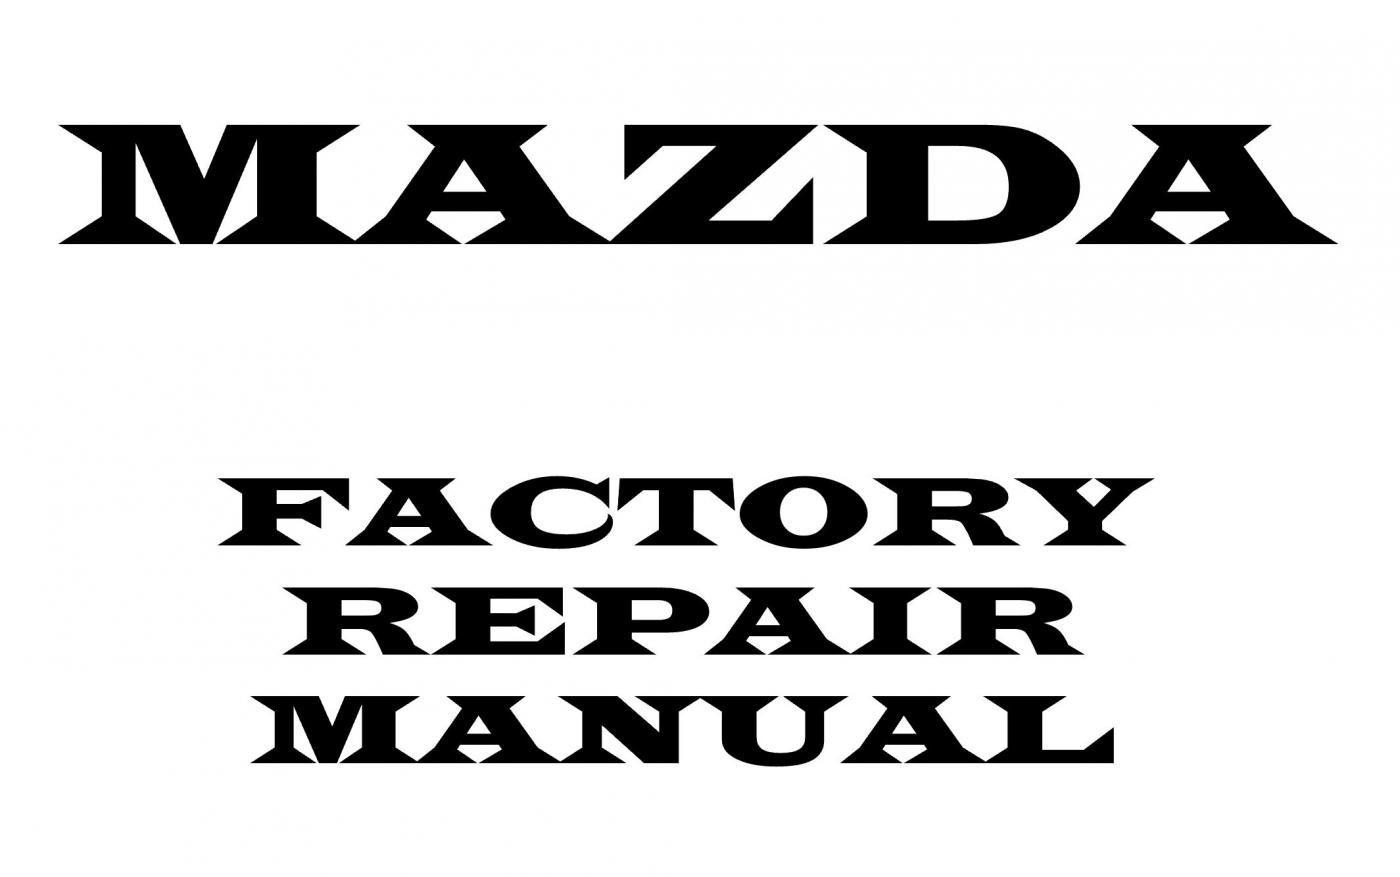 Mazda B SERIES 2004 2005 2006 repair manual